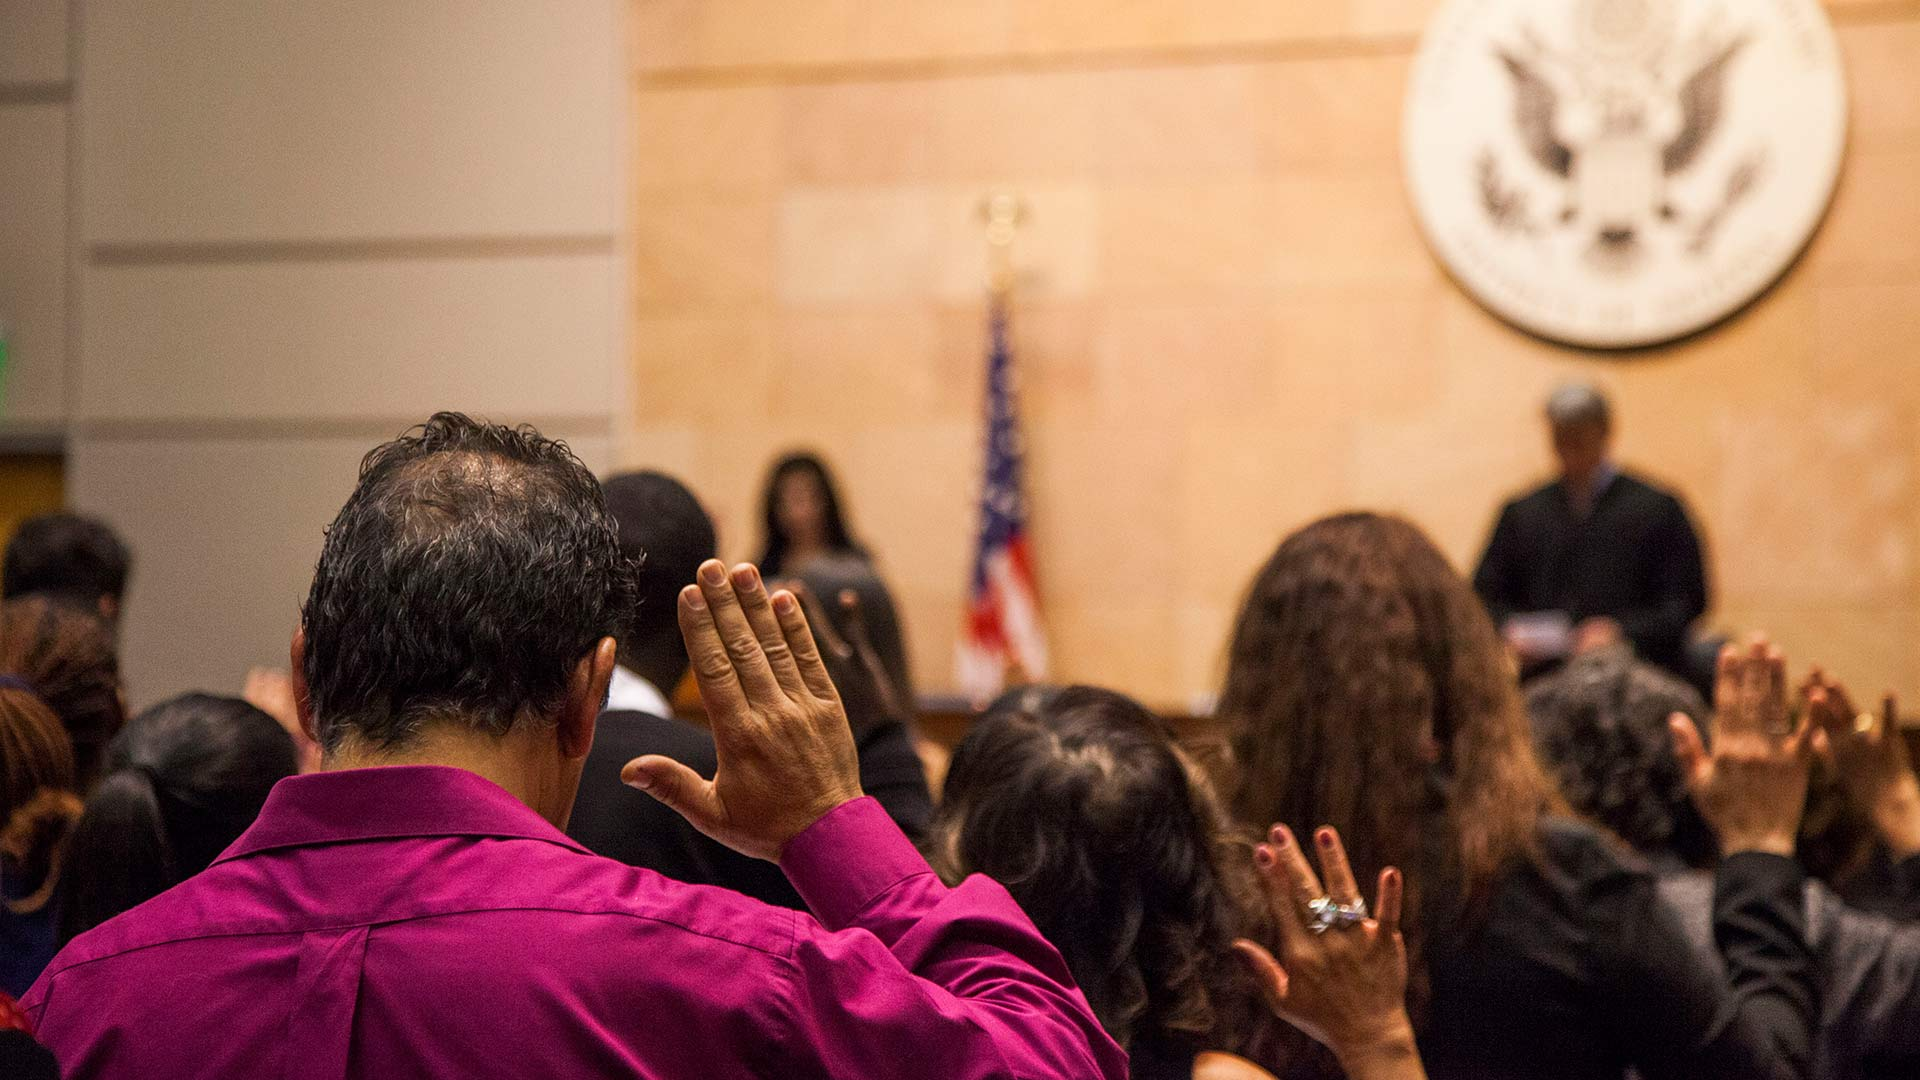 Soon-to-be U.S. citizens taking an oath at a naturalization ceremony at the Evo A. DeConcini U.S. Courthouse in Tucson, February 2018.